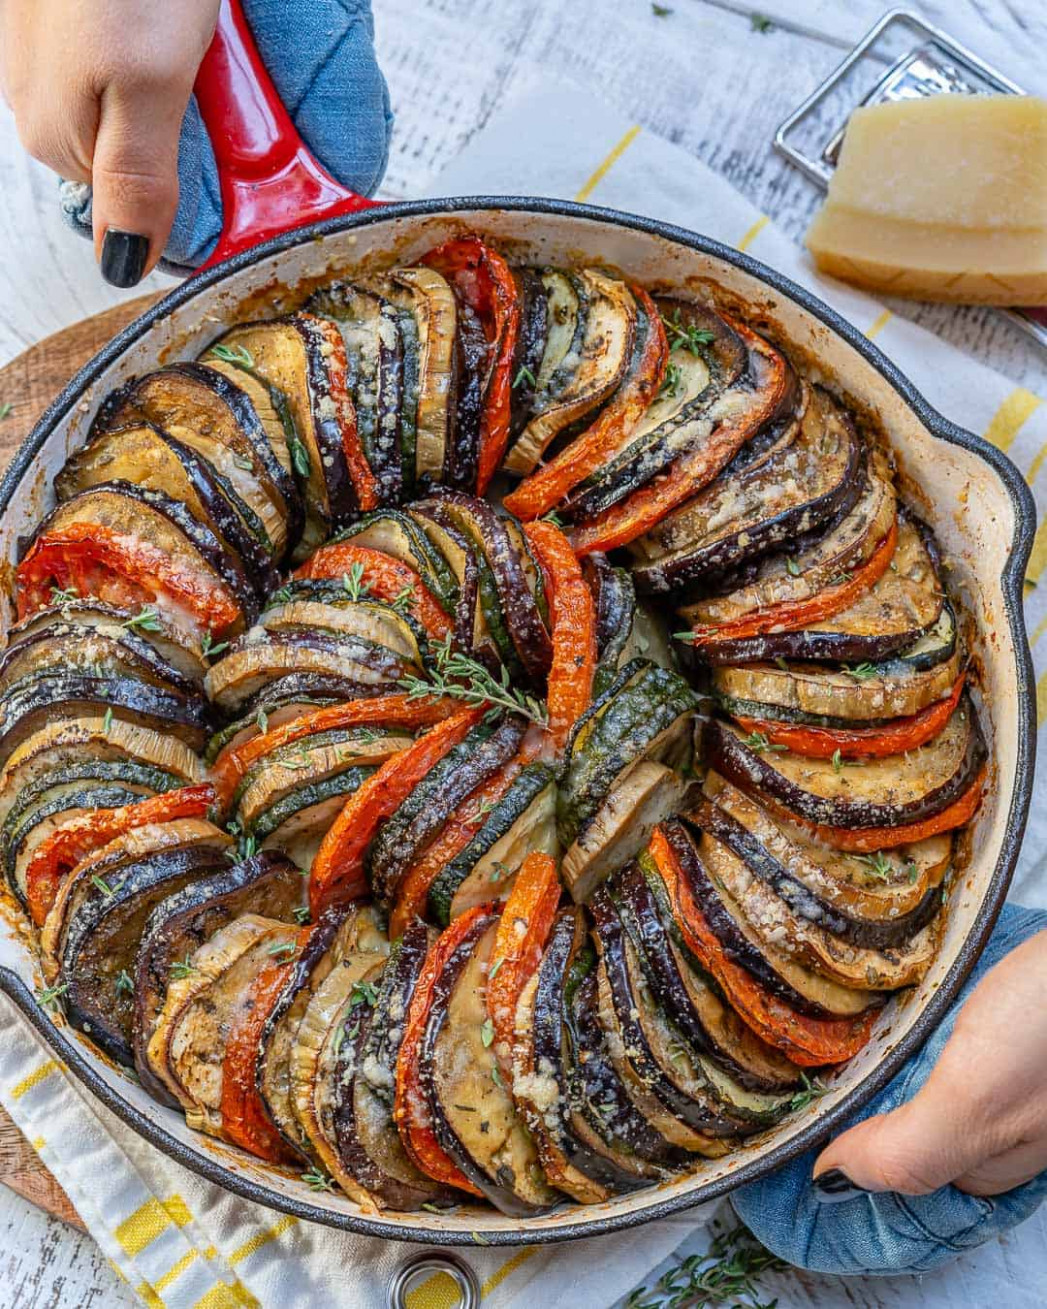 Healthy Eggplant And Zucchini Gratin Recipe | Healthy ..